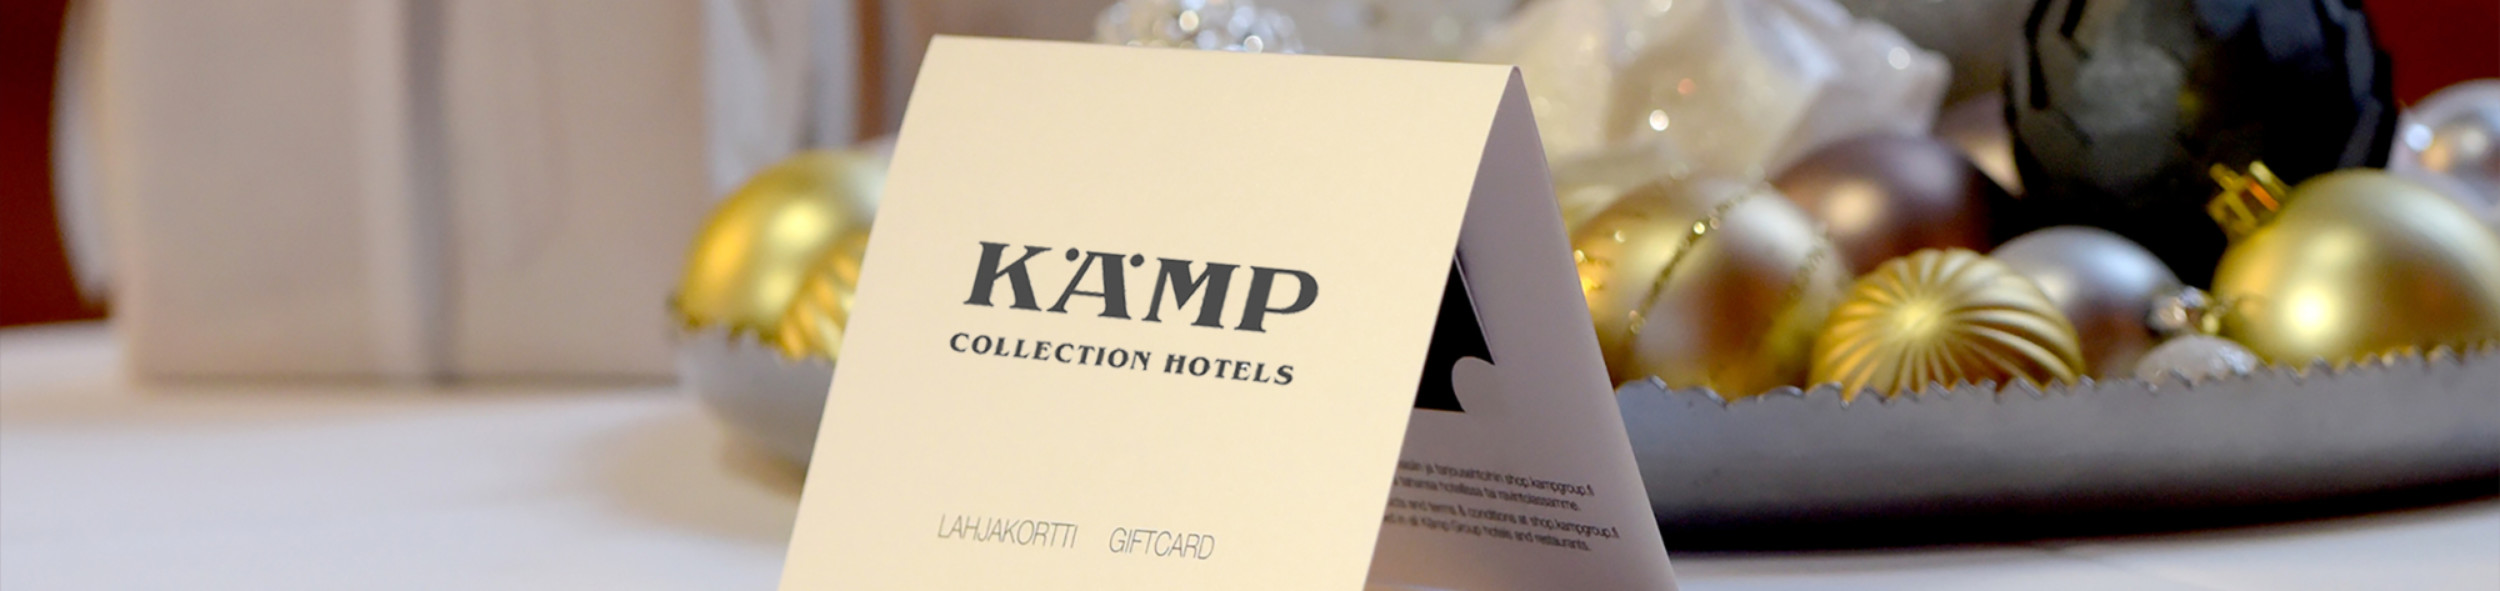 Kämp Collection Hotels Lahjakortti